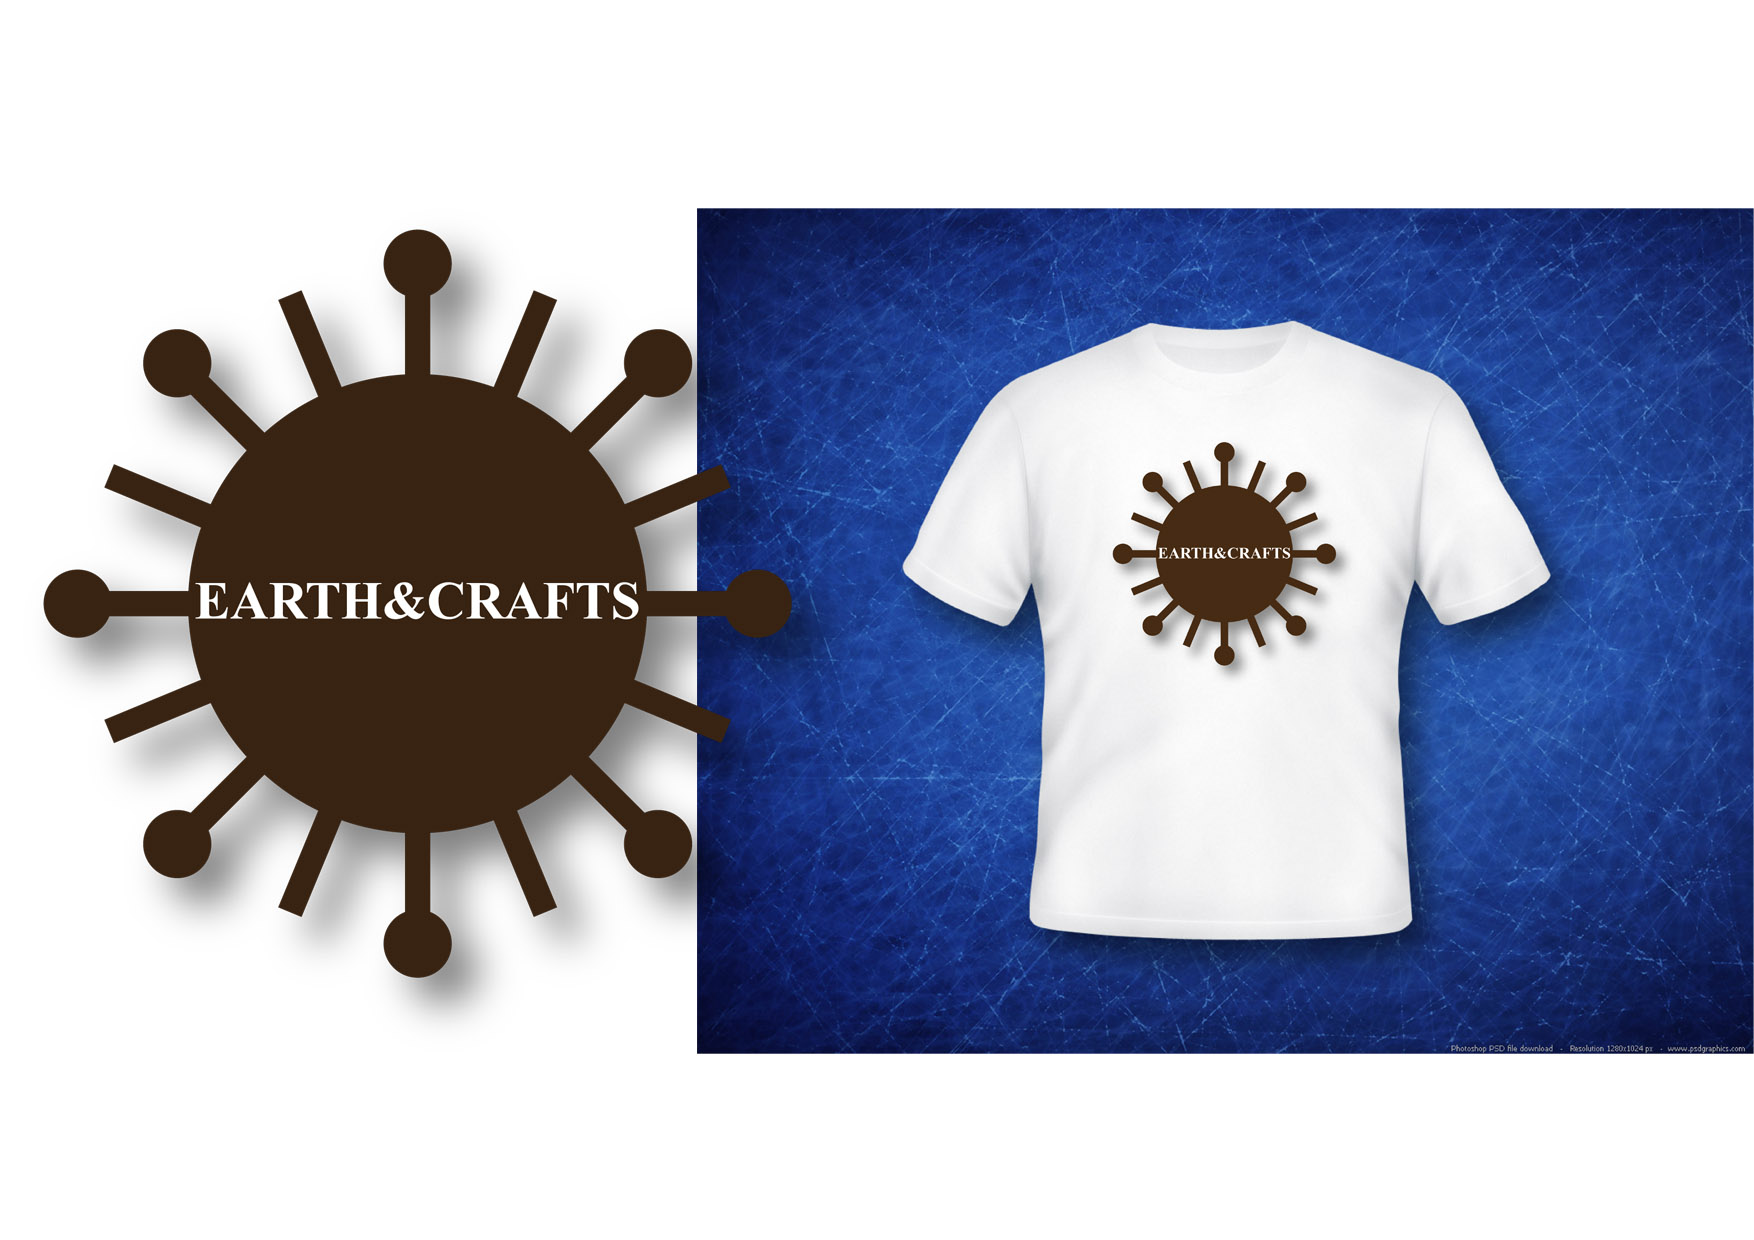 14 predlog logo EARTH&CRAFTS stefan petrovic stech010@gmail.com